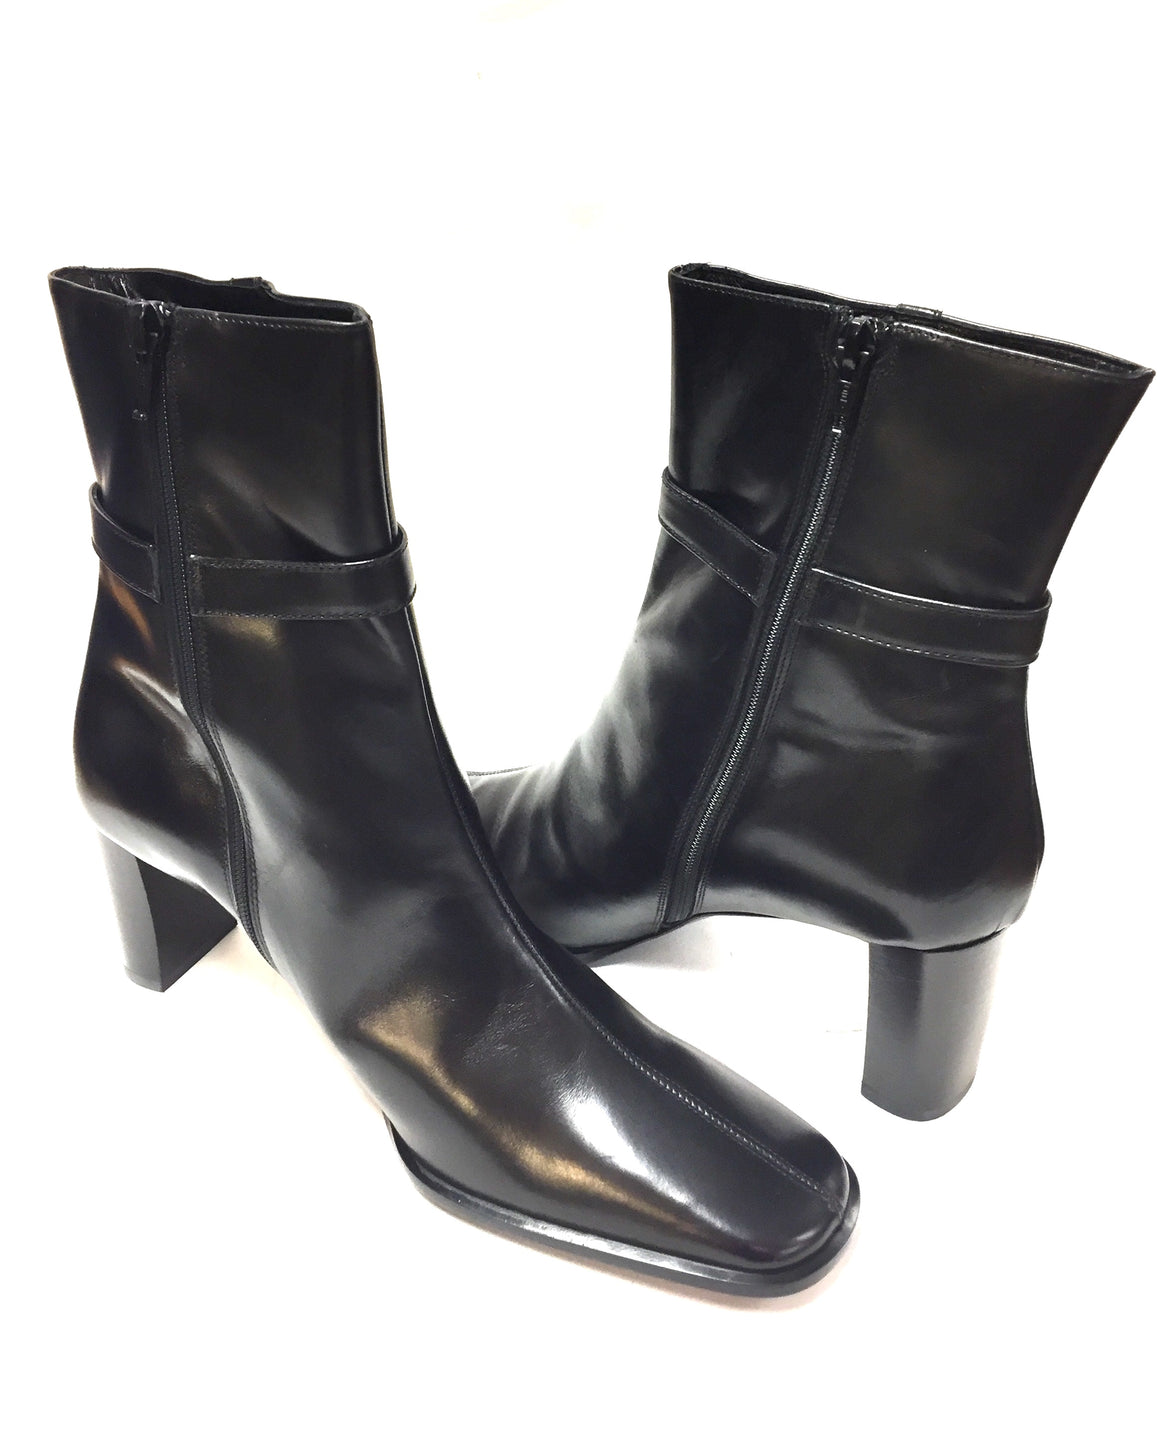 COACH New in Box Black Glossy Leather Mid-Heel Ankle Boots Booties Size: 8.5